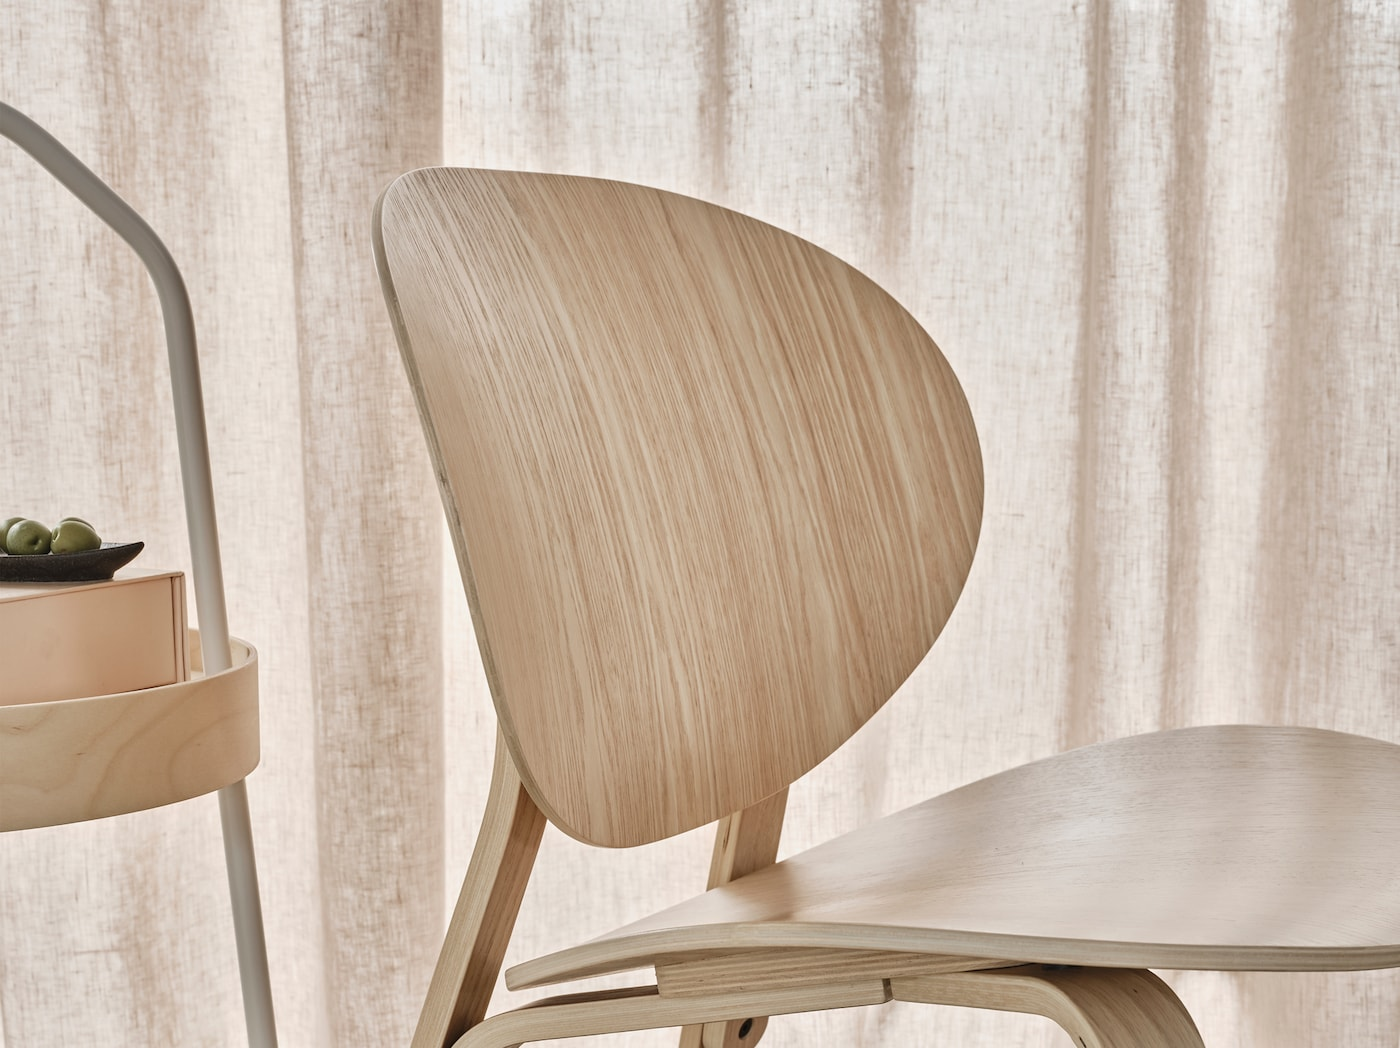 A close-up of FRÖSET easy chair in white stained oak veneer made in a Scandinavian design with clean lines.